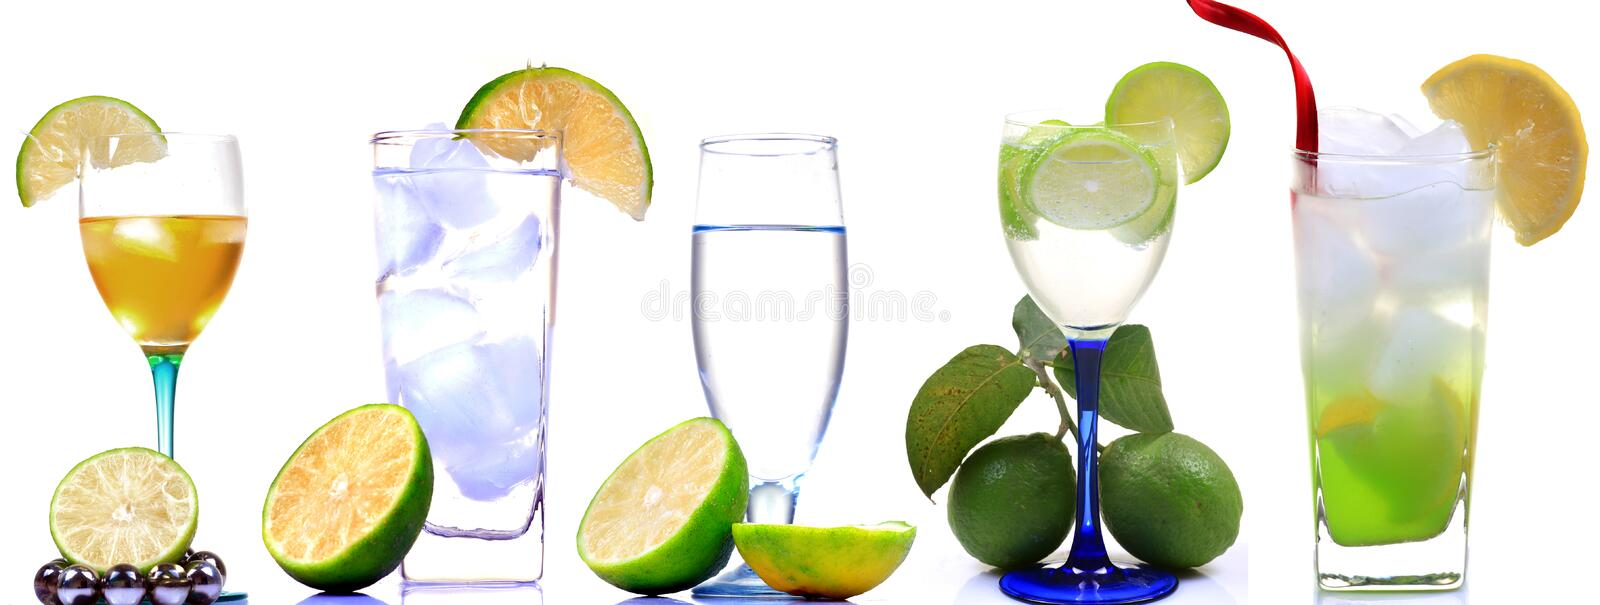 Lemonade drinks. Looking beautiful over white background royalty free stock images